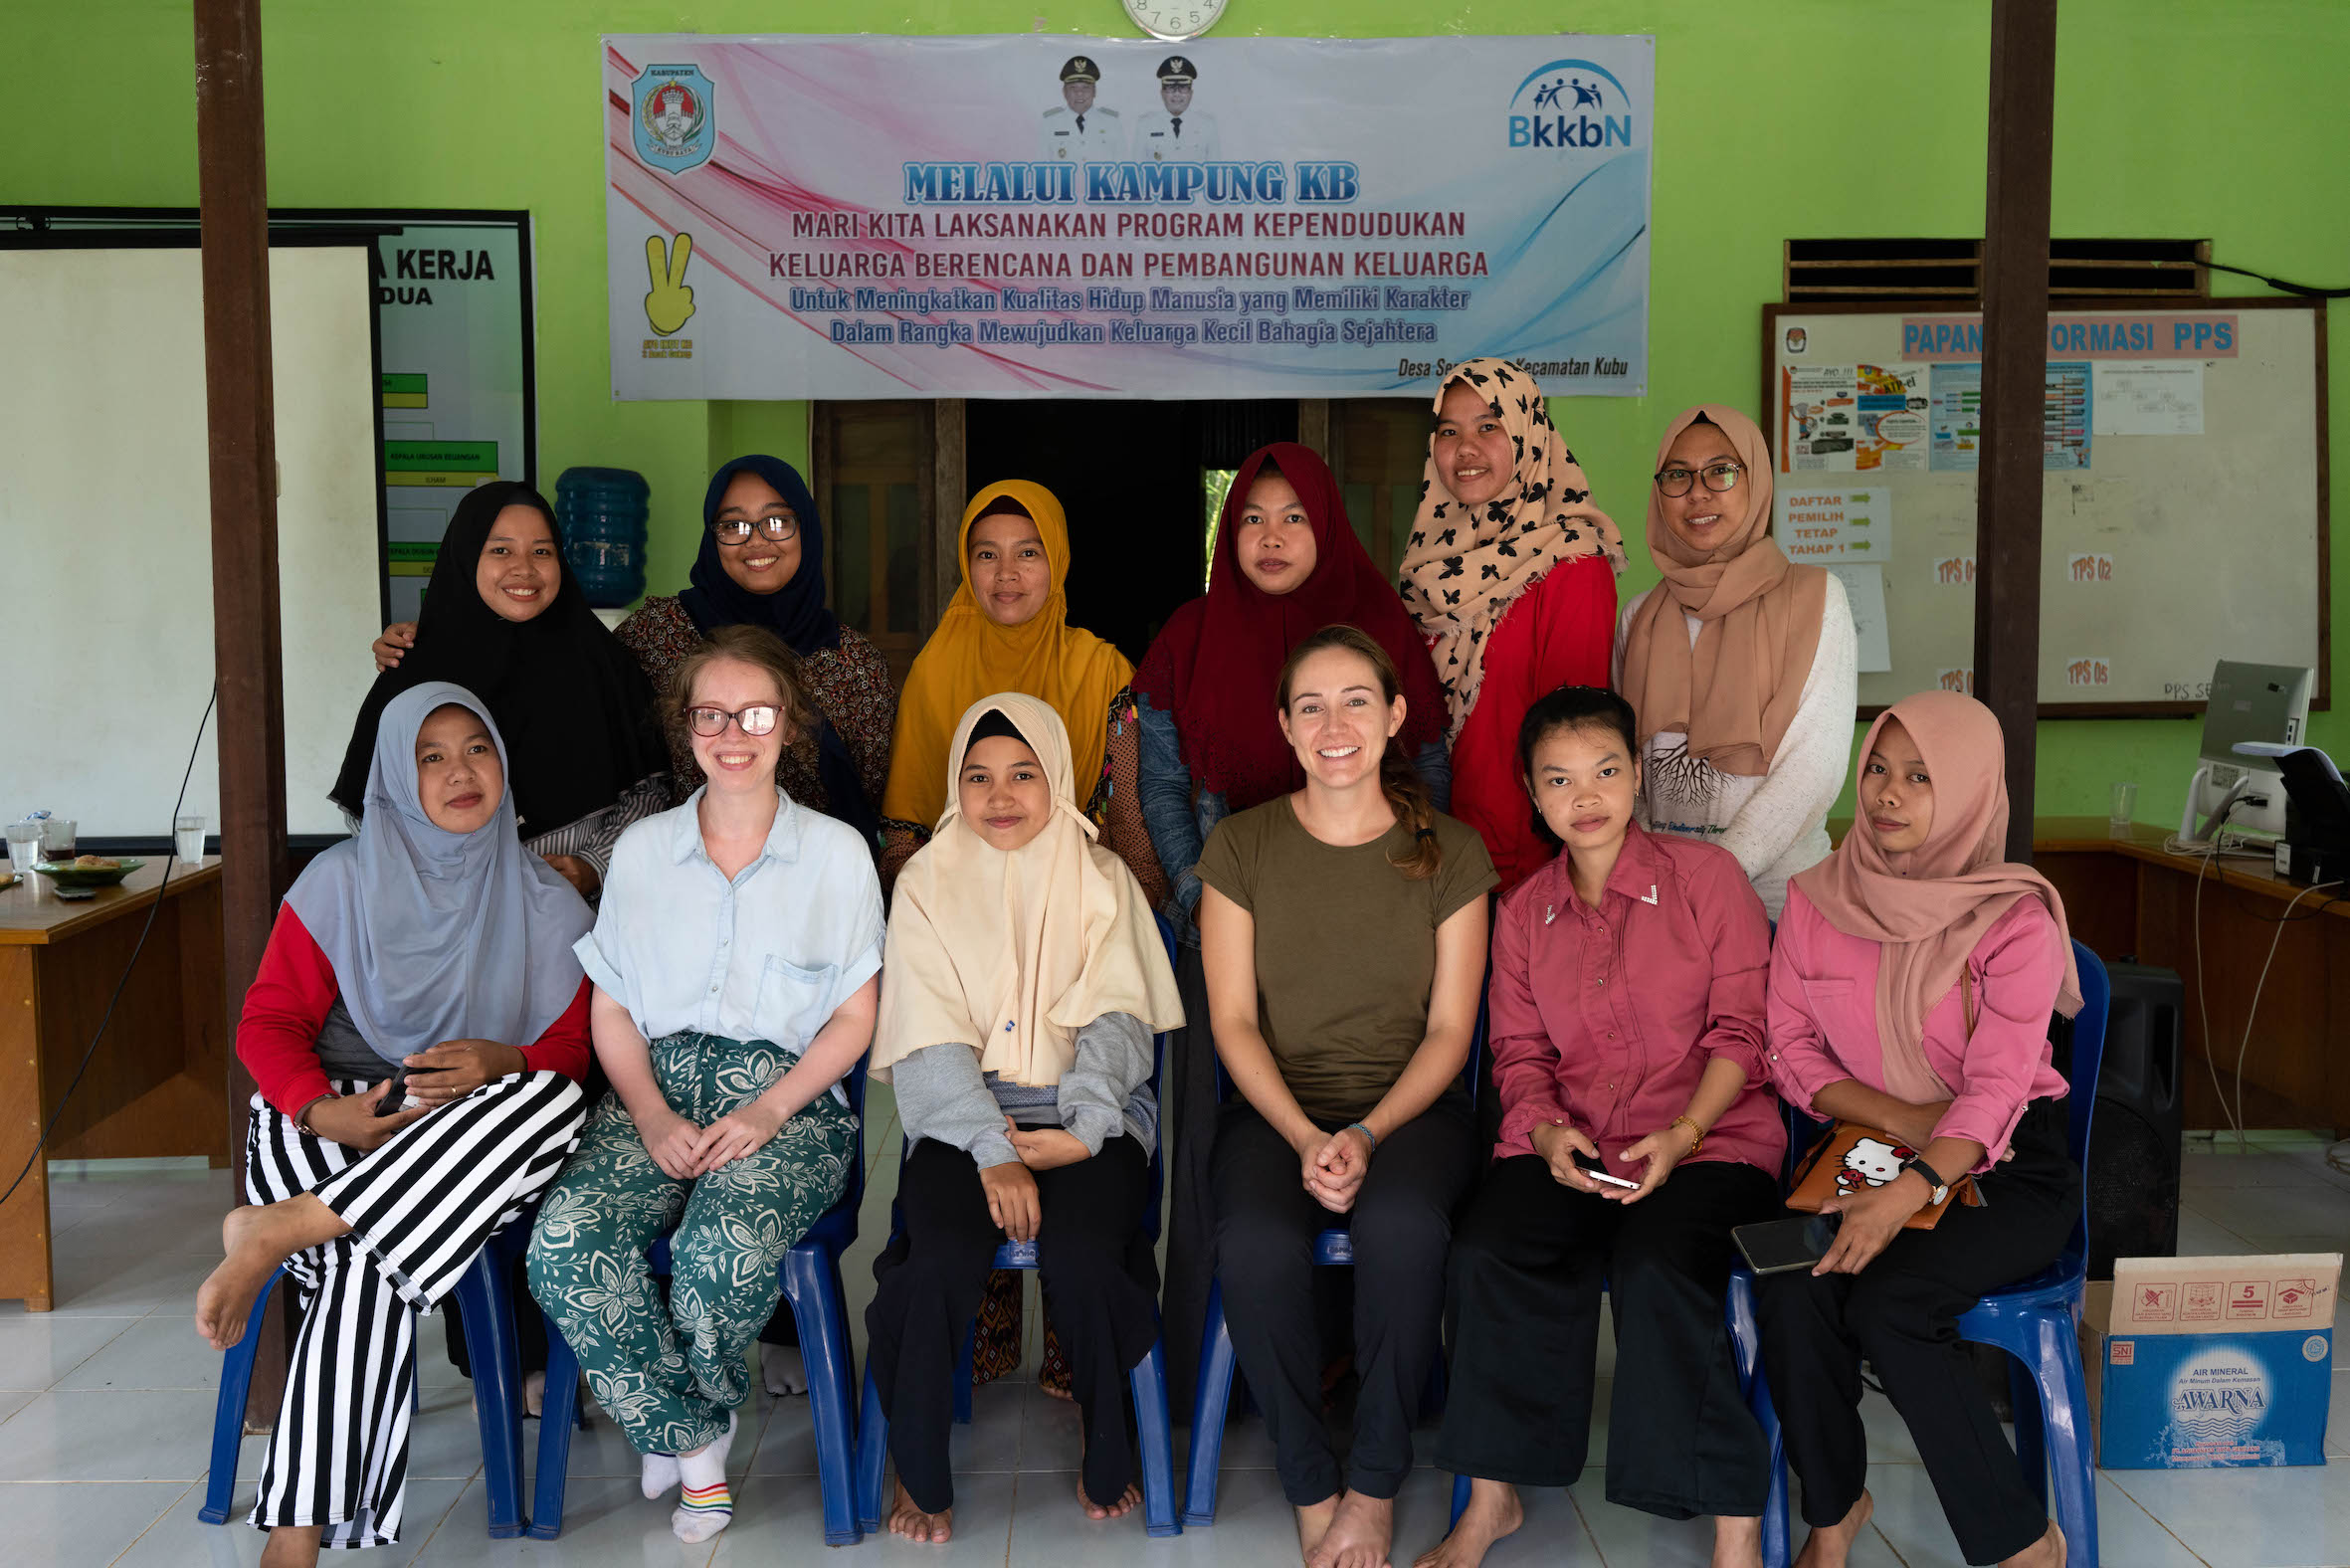 The women focus group conducted on day two of our field trip with Blue Communities